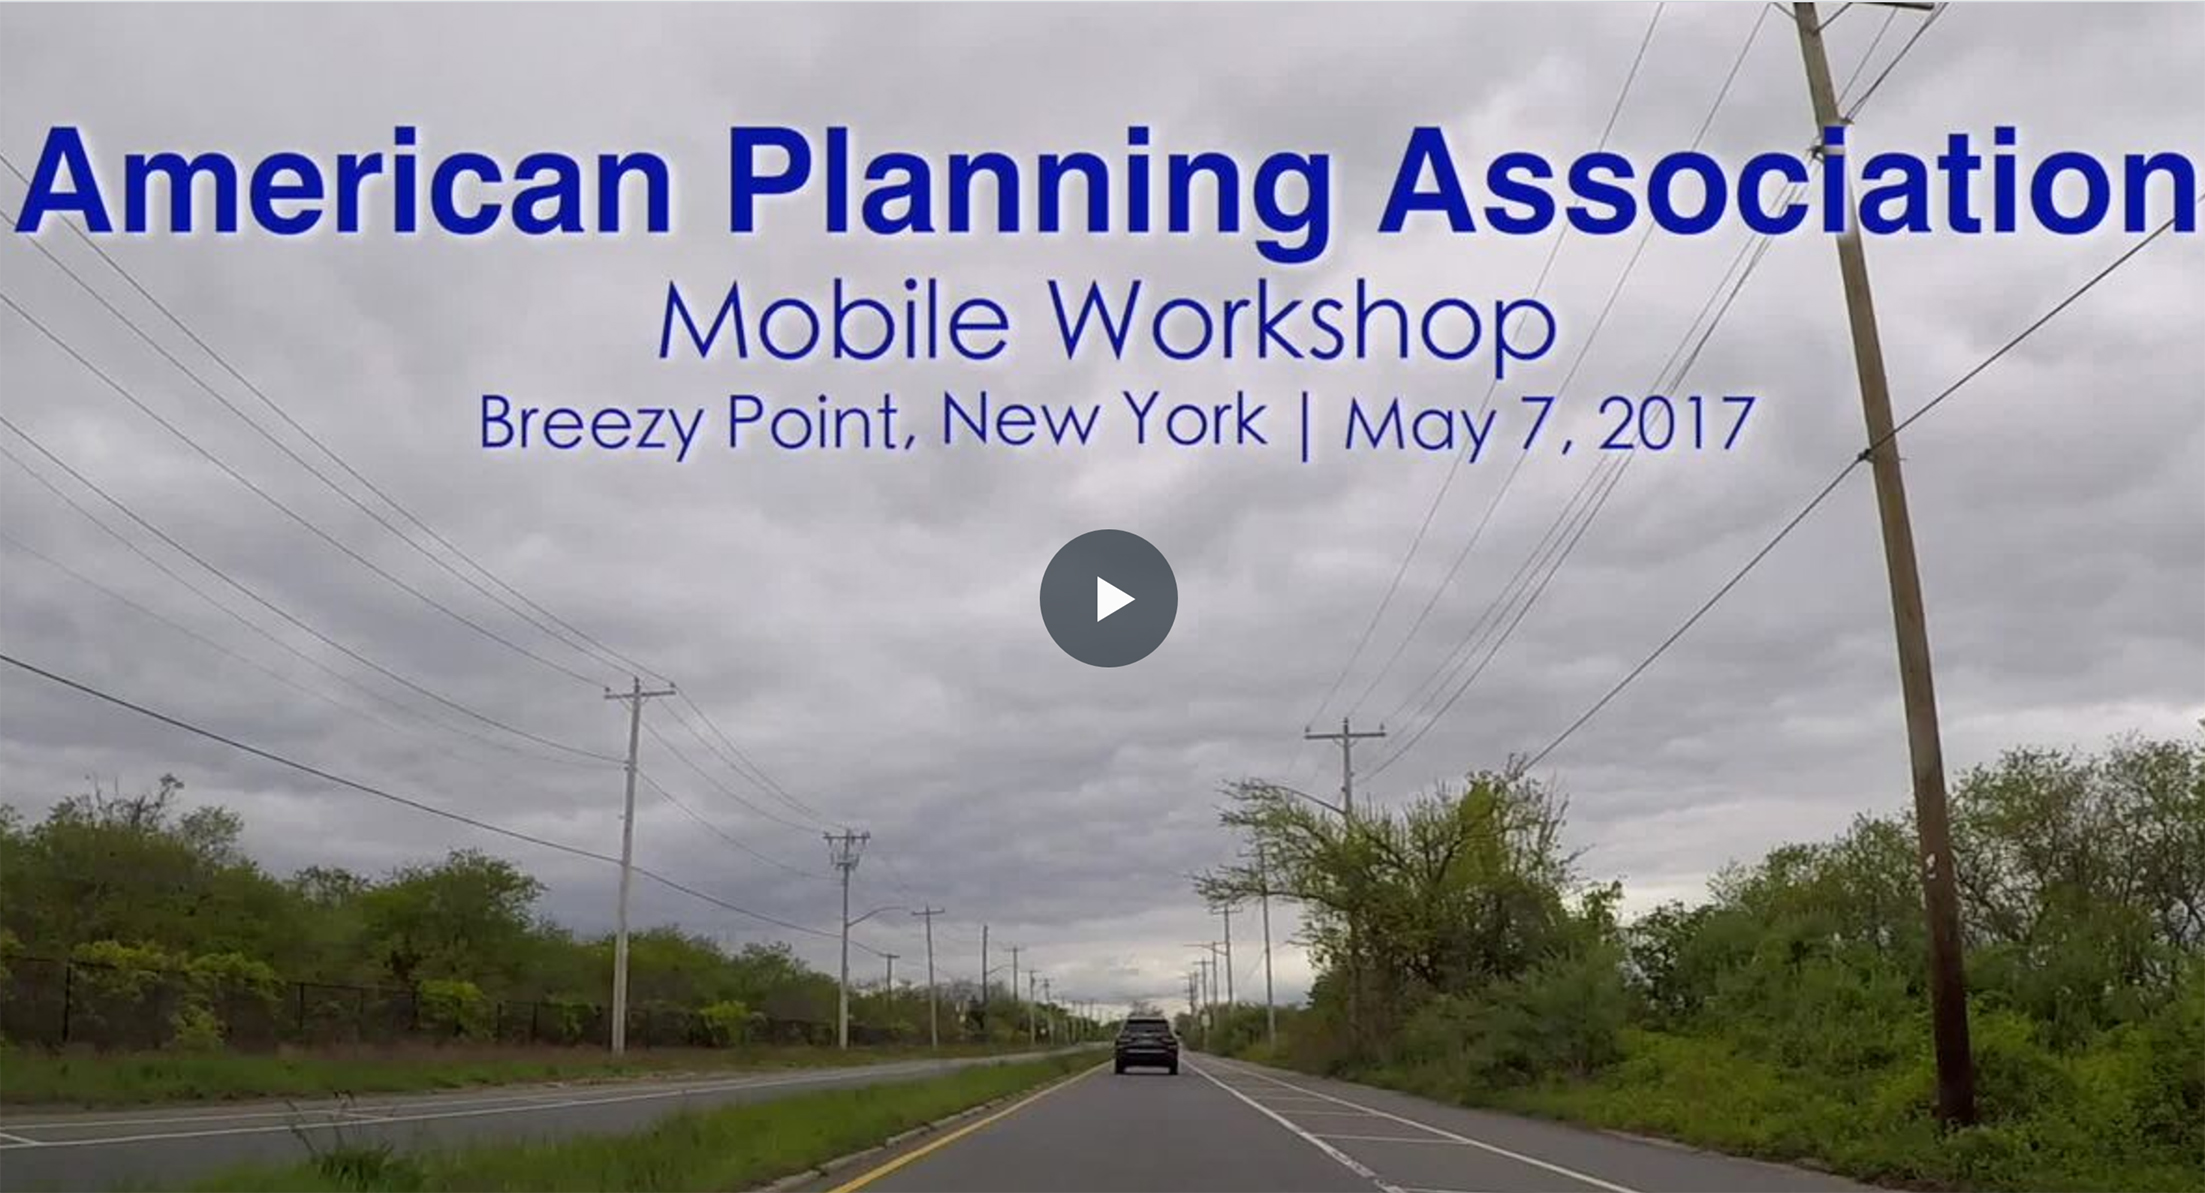 Image from the video showing a still frame of a road. The text reads American Planning Association Mobile Workshop, Breezy Point, New York, May 7, 2017